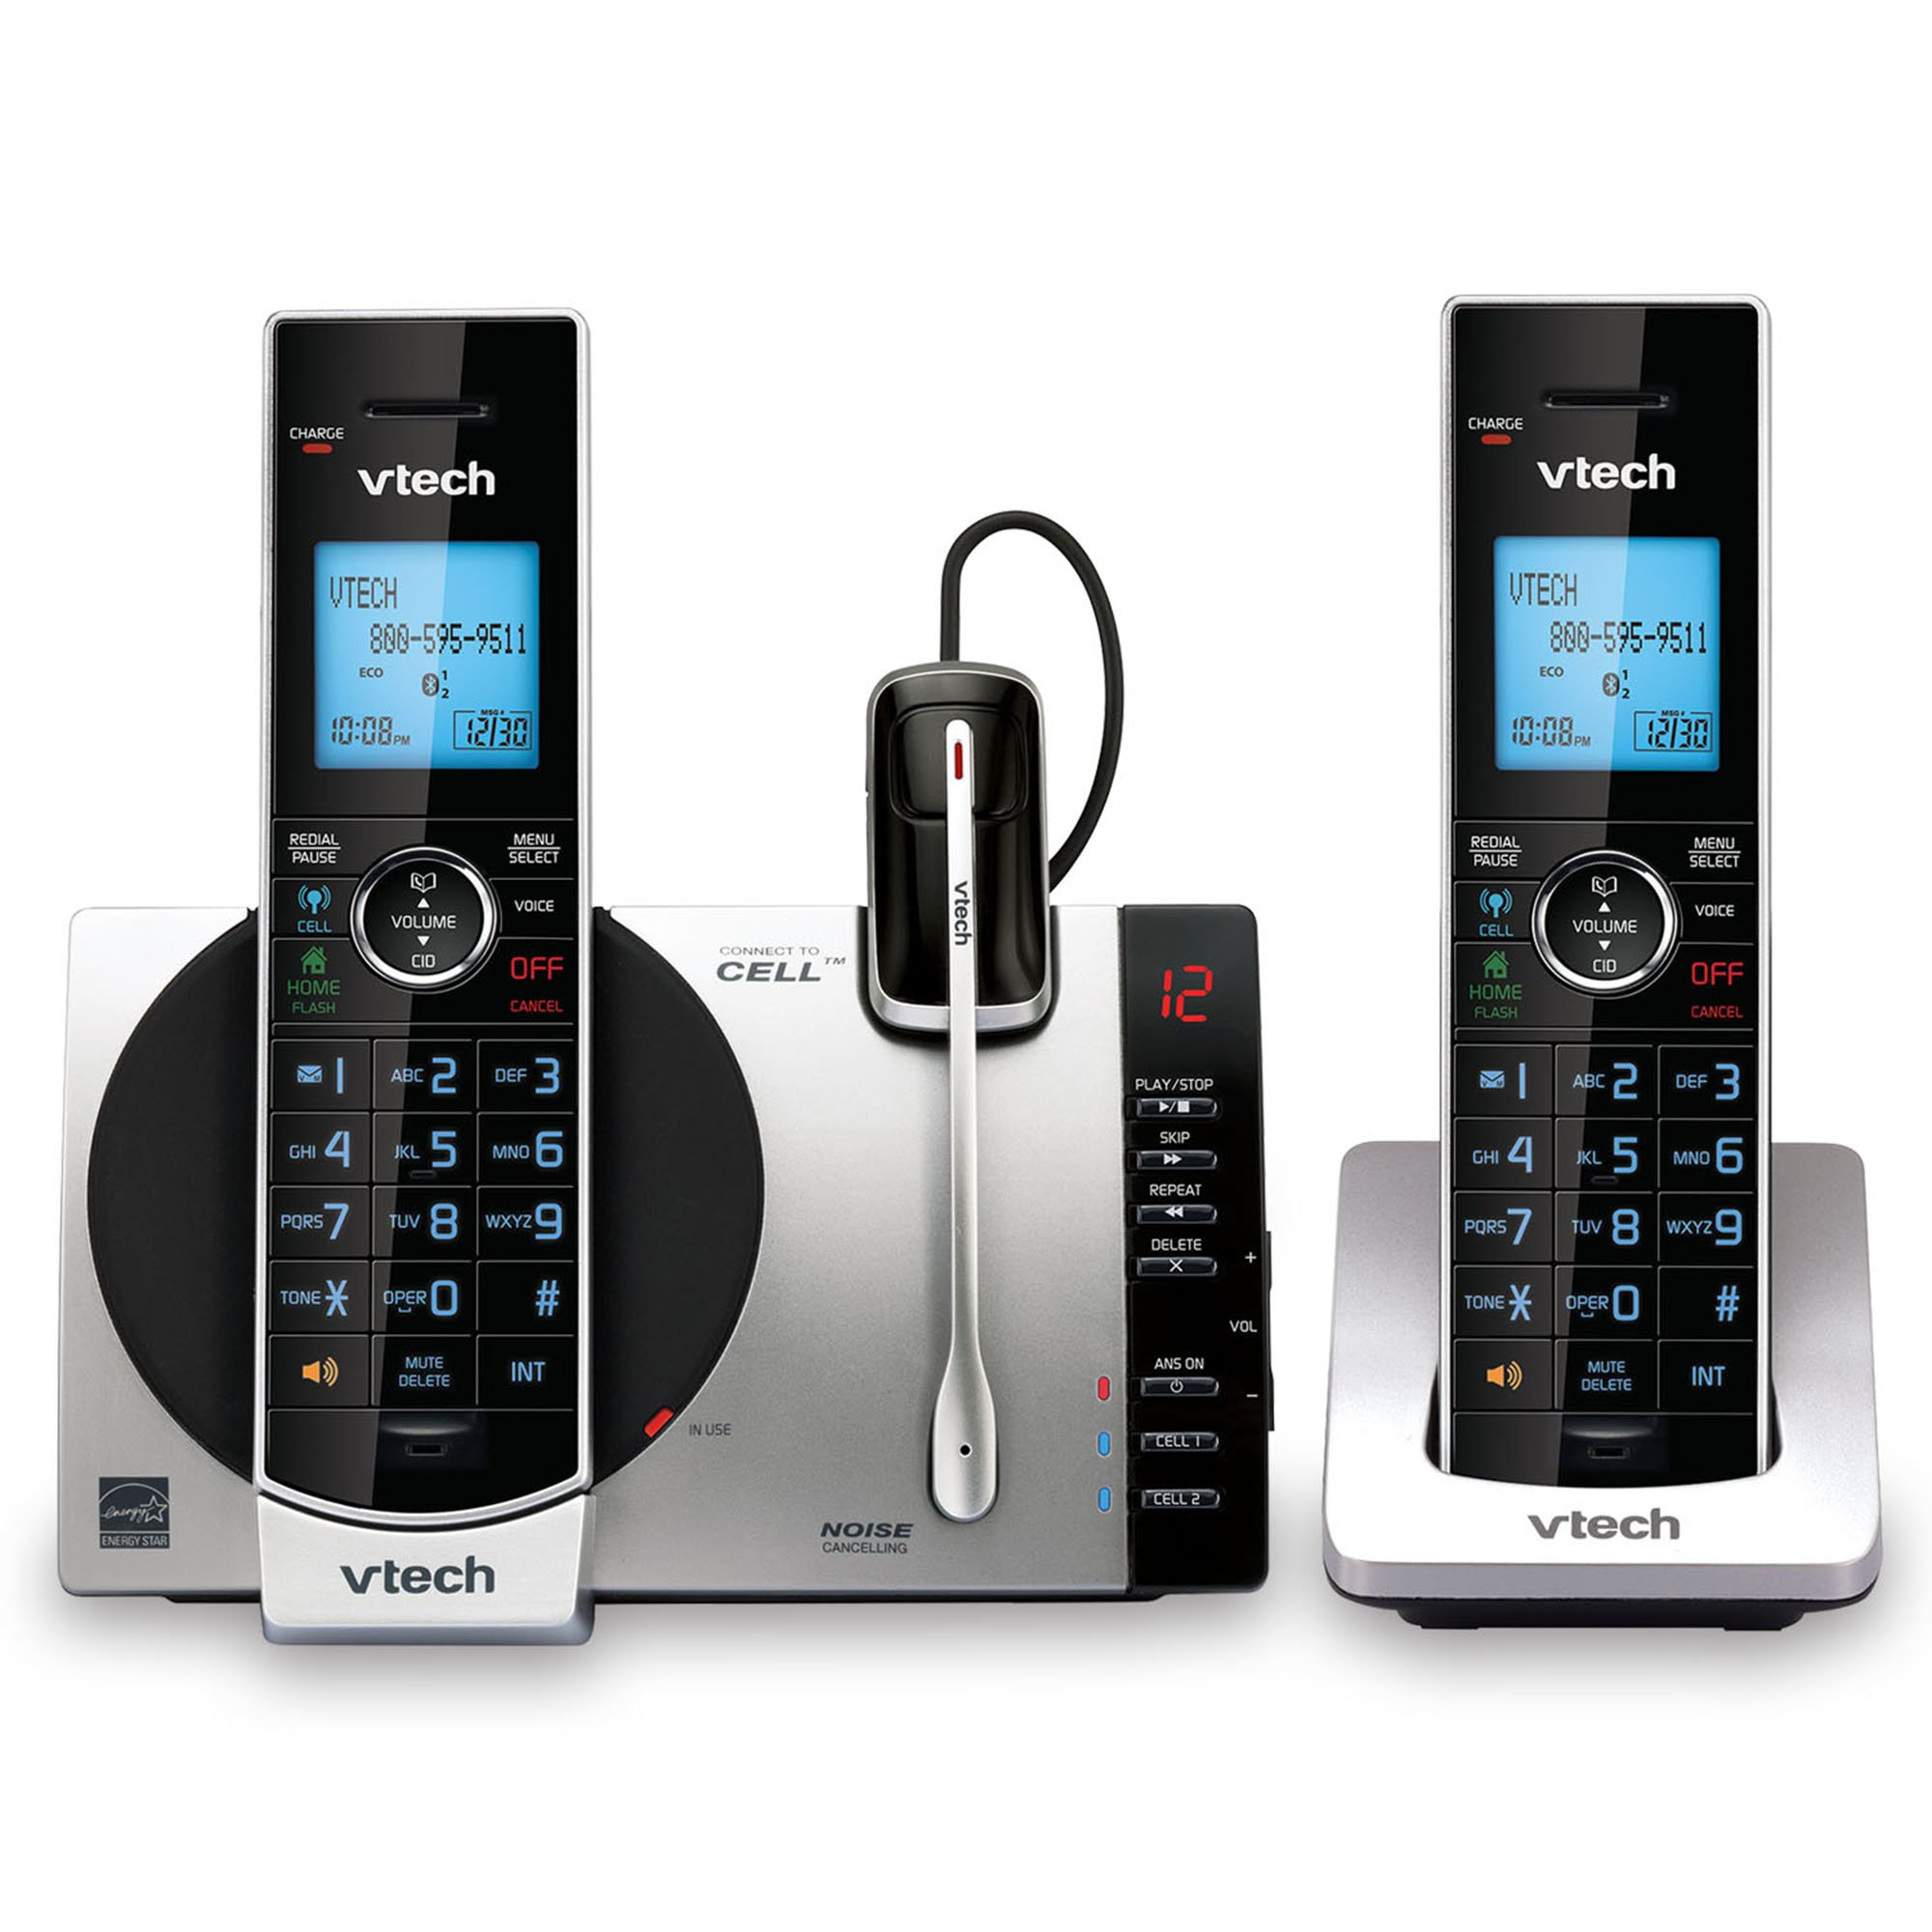 VTech DS6771-3 DECT 6.0 Expandable Cordless Phone with Connect to Cell, Siri and Google Now Access, Silver/Black, 2 Handsets and 1 Cordless Headset by VTech